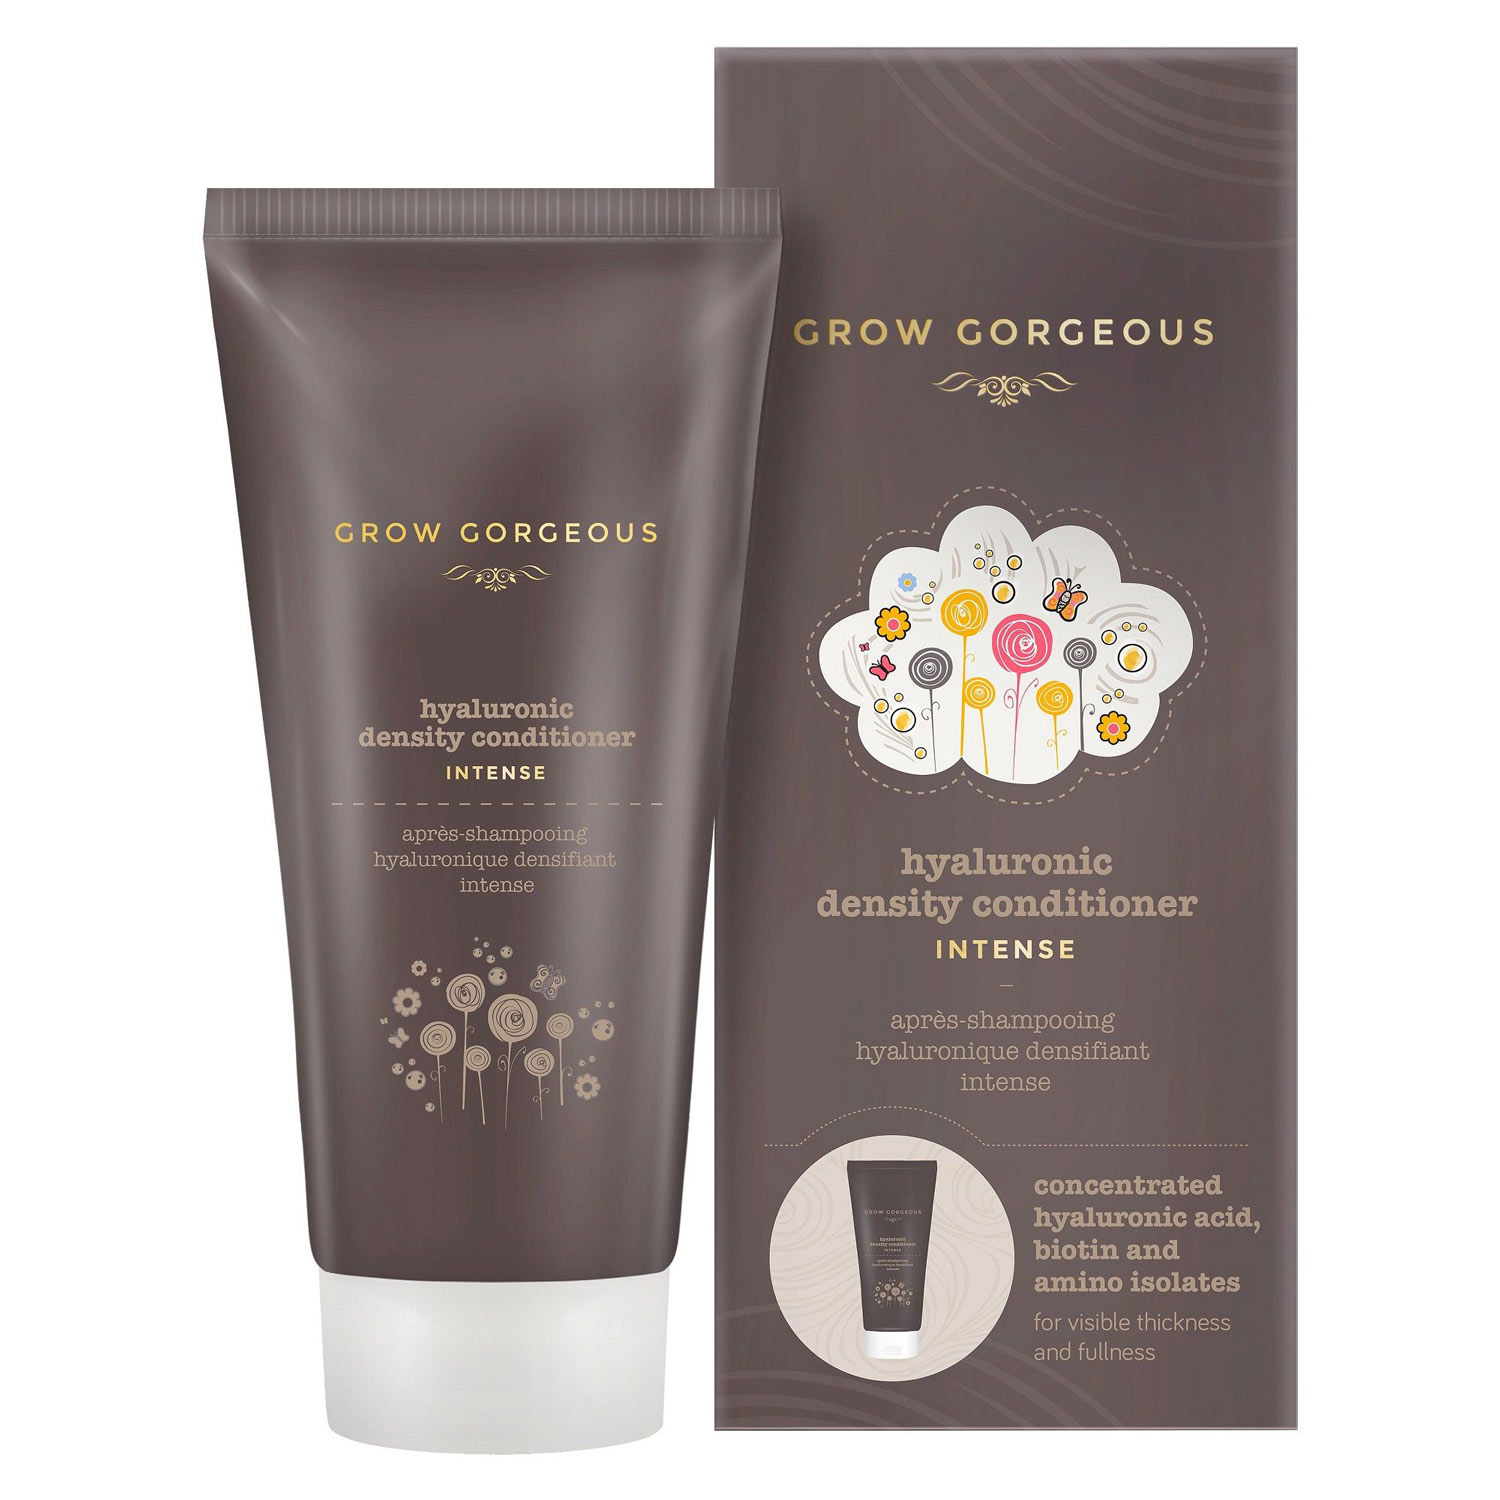 GROW GORGEOUS Hyaluronic Density Conditioner, £18